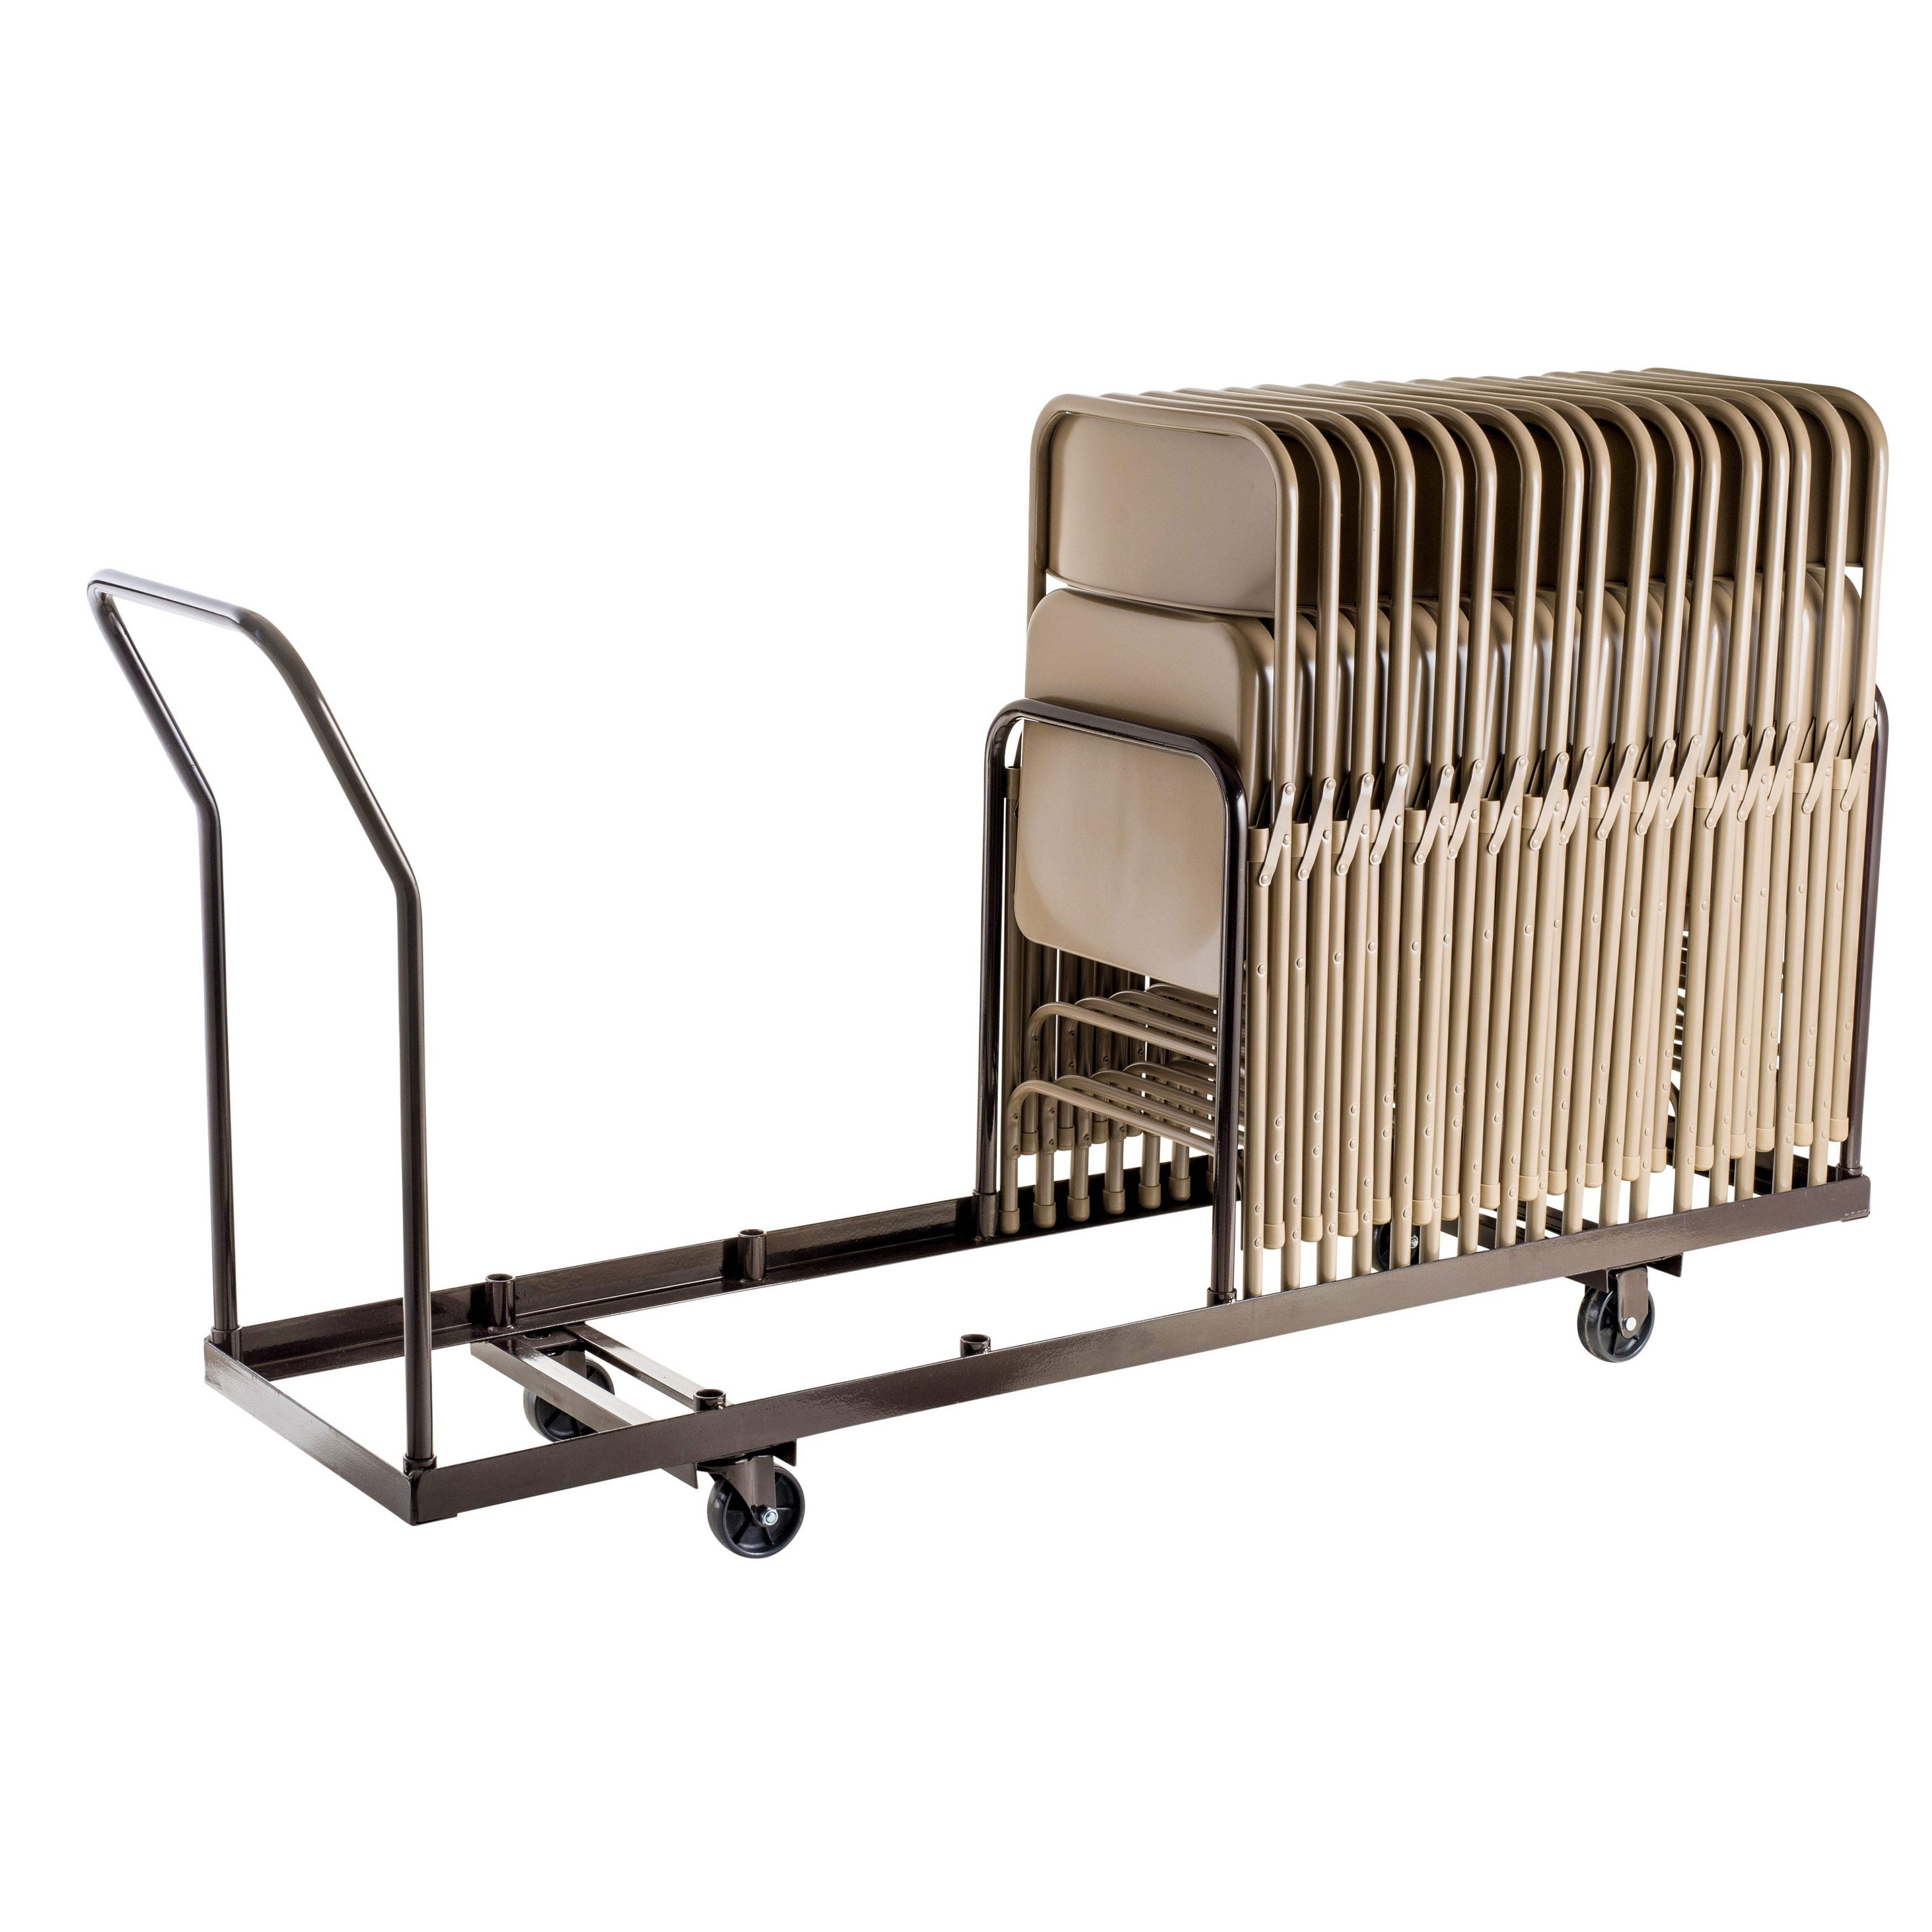 35 Capacity Folding Chair Dolly Truck